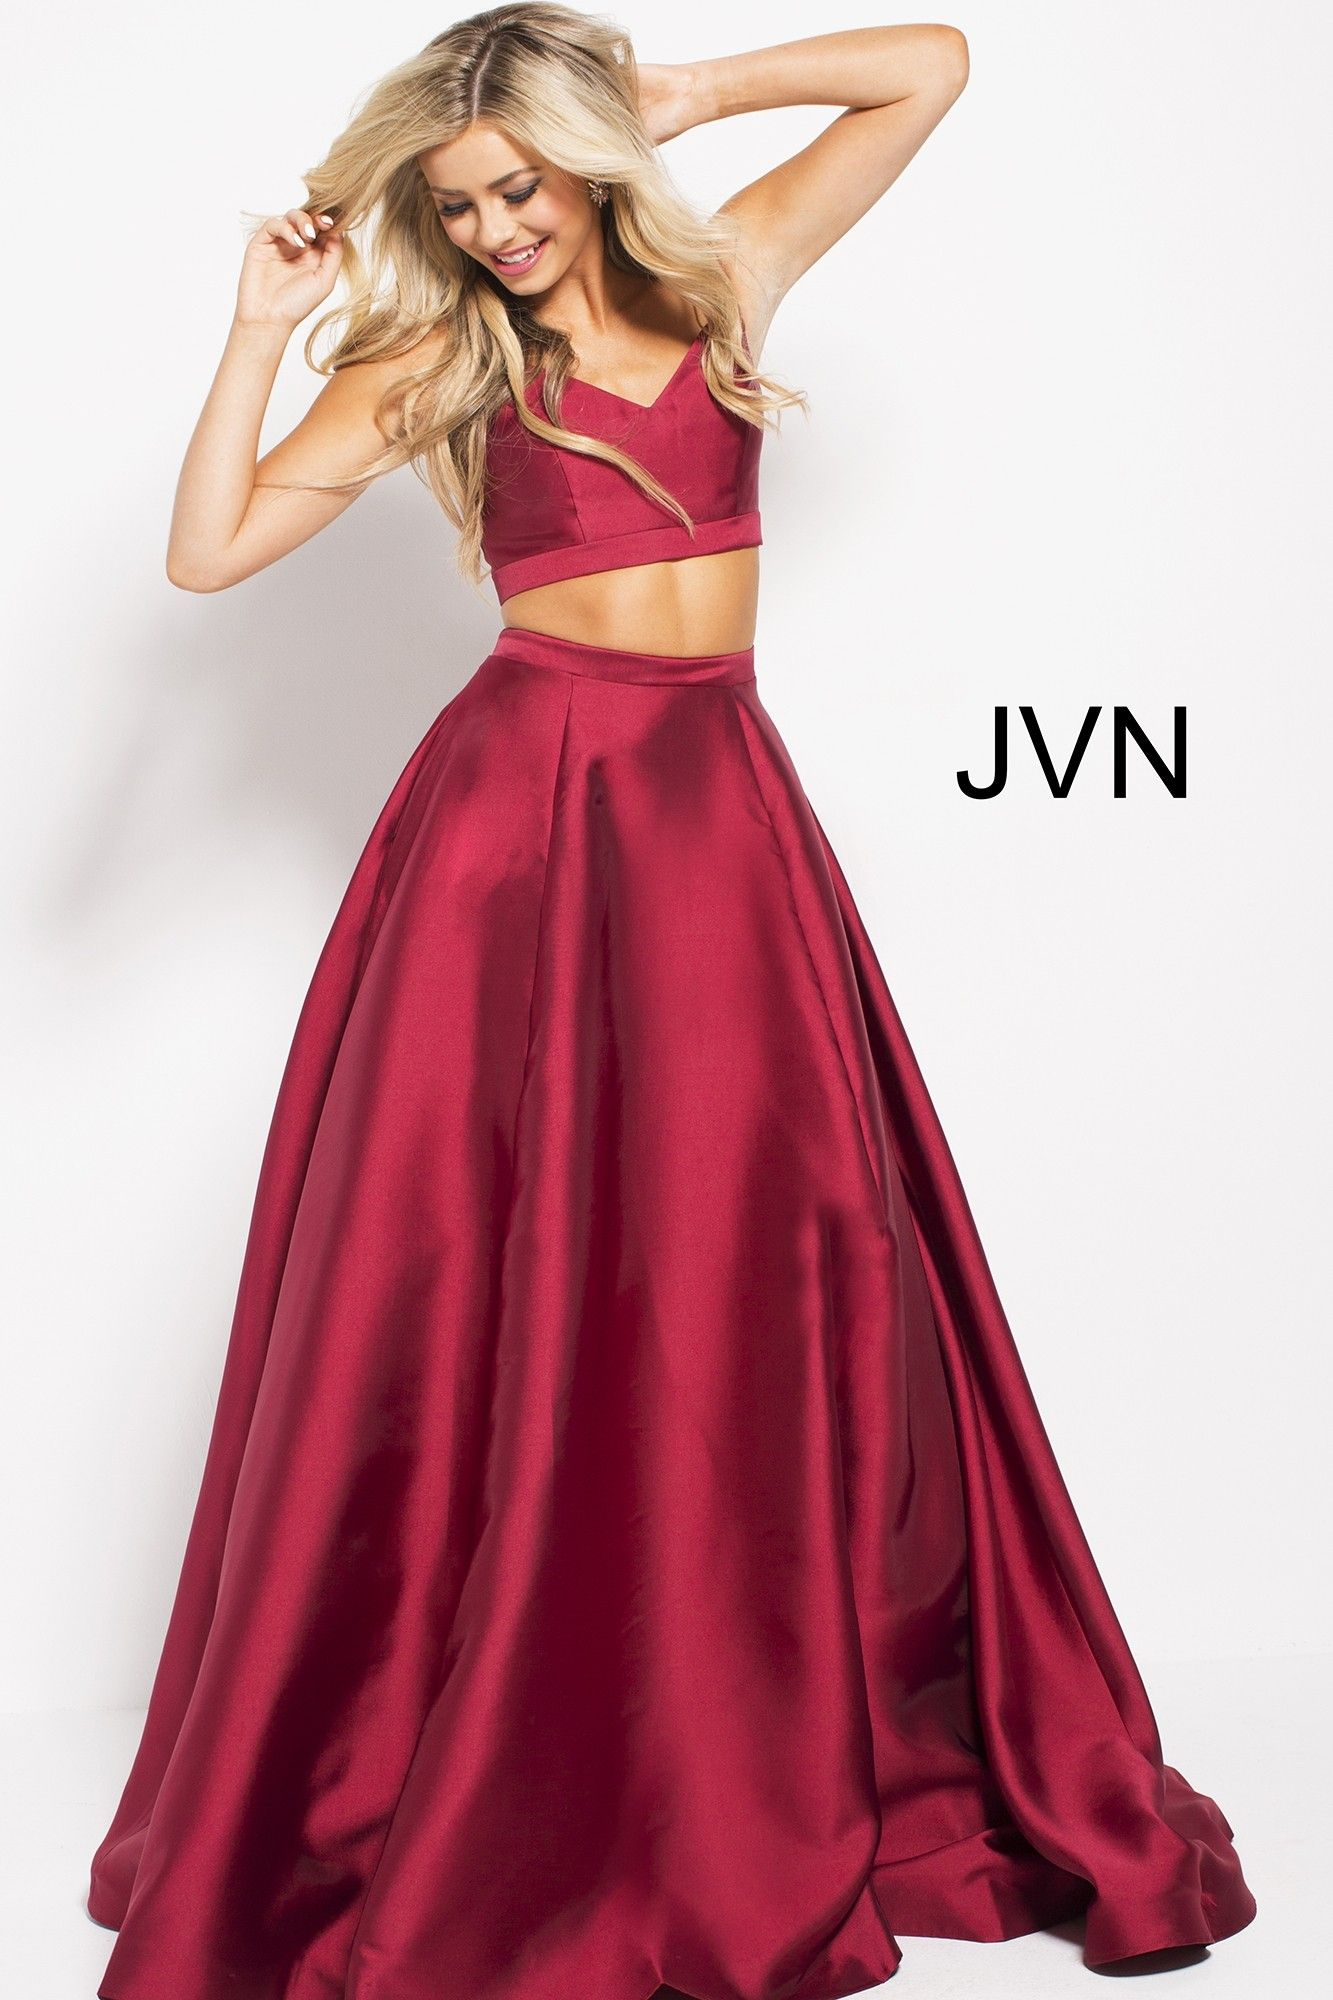 1e429a4450d Dress to impress in JVN59636. This two piece satin stunner features a crop  top with V-neck and spaghetti straps. The back of the top closes with a  sexy ...